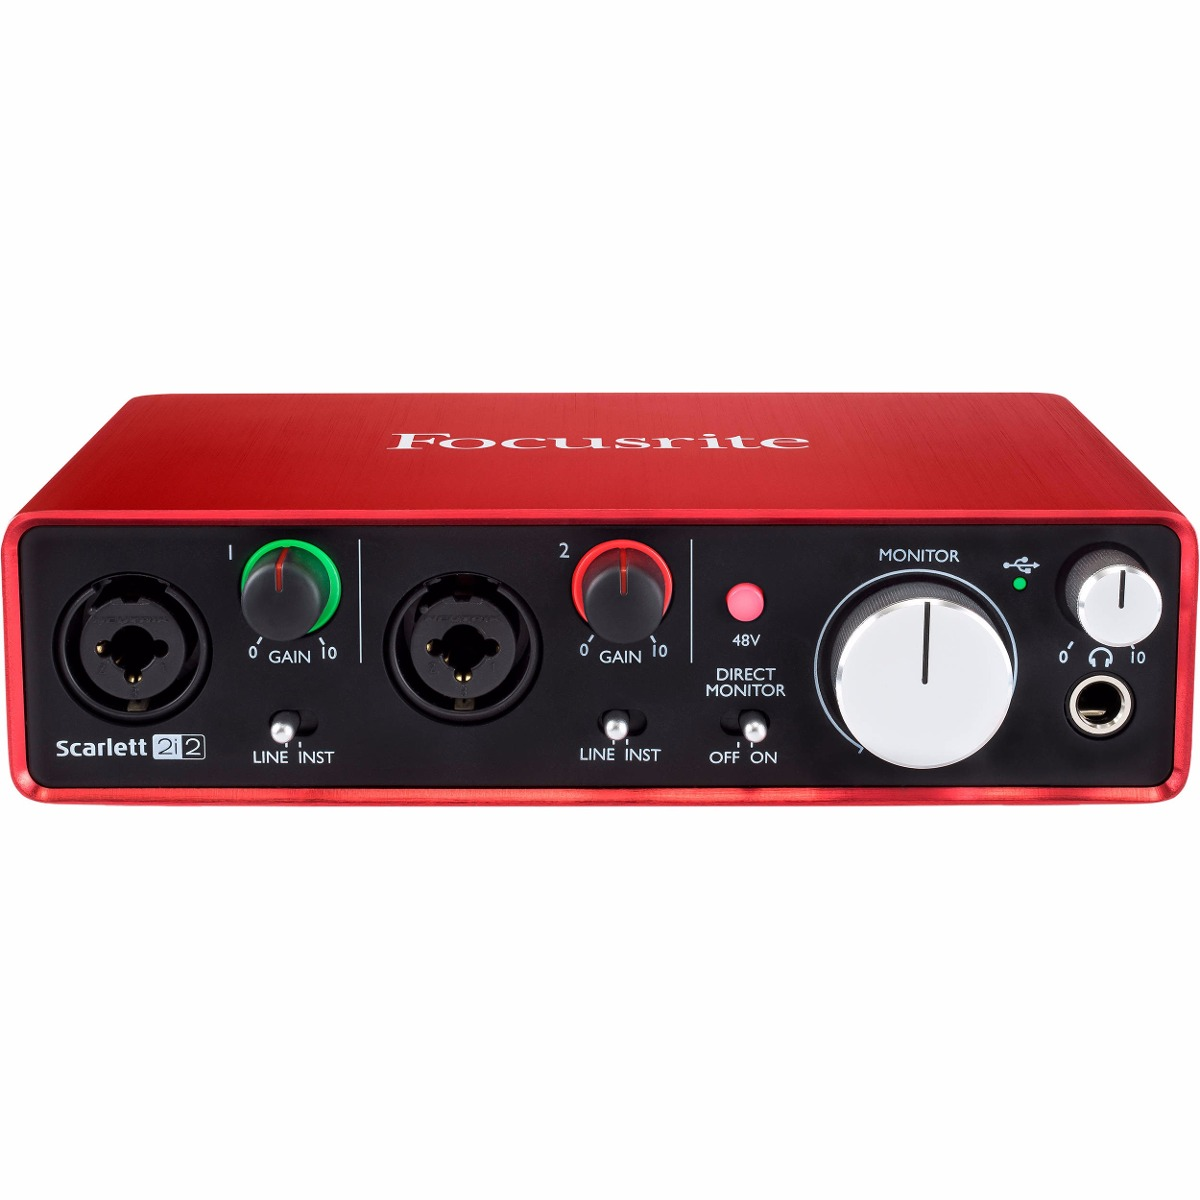 focusrite scarlett 2i2 placa de audio interface usb 2 geraca r 850 00 em mercado livre. Black Bedroom Furniture Sets. Home Design Ideas